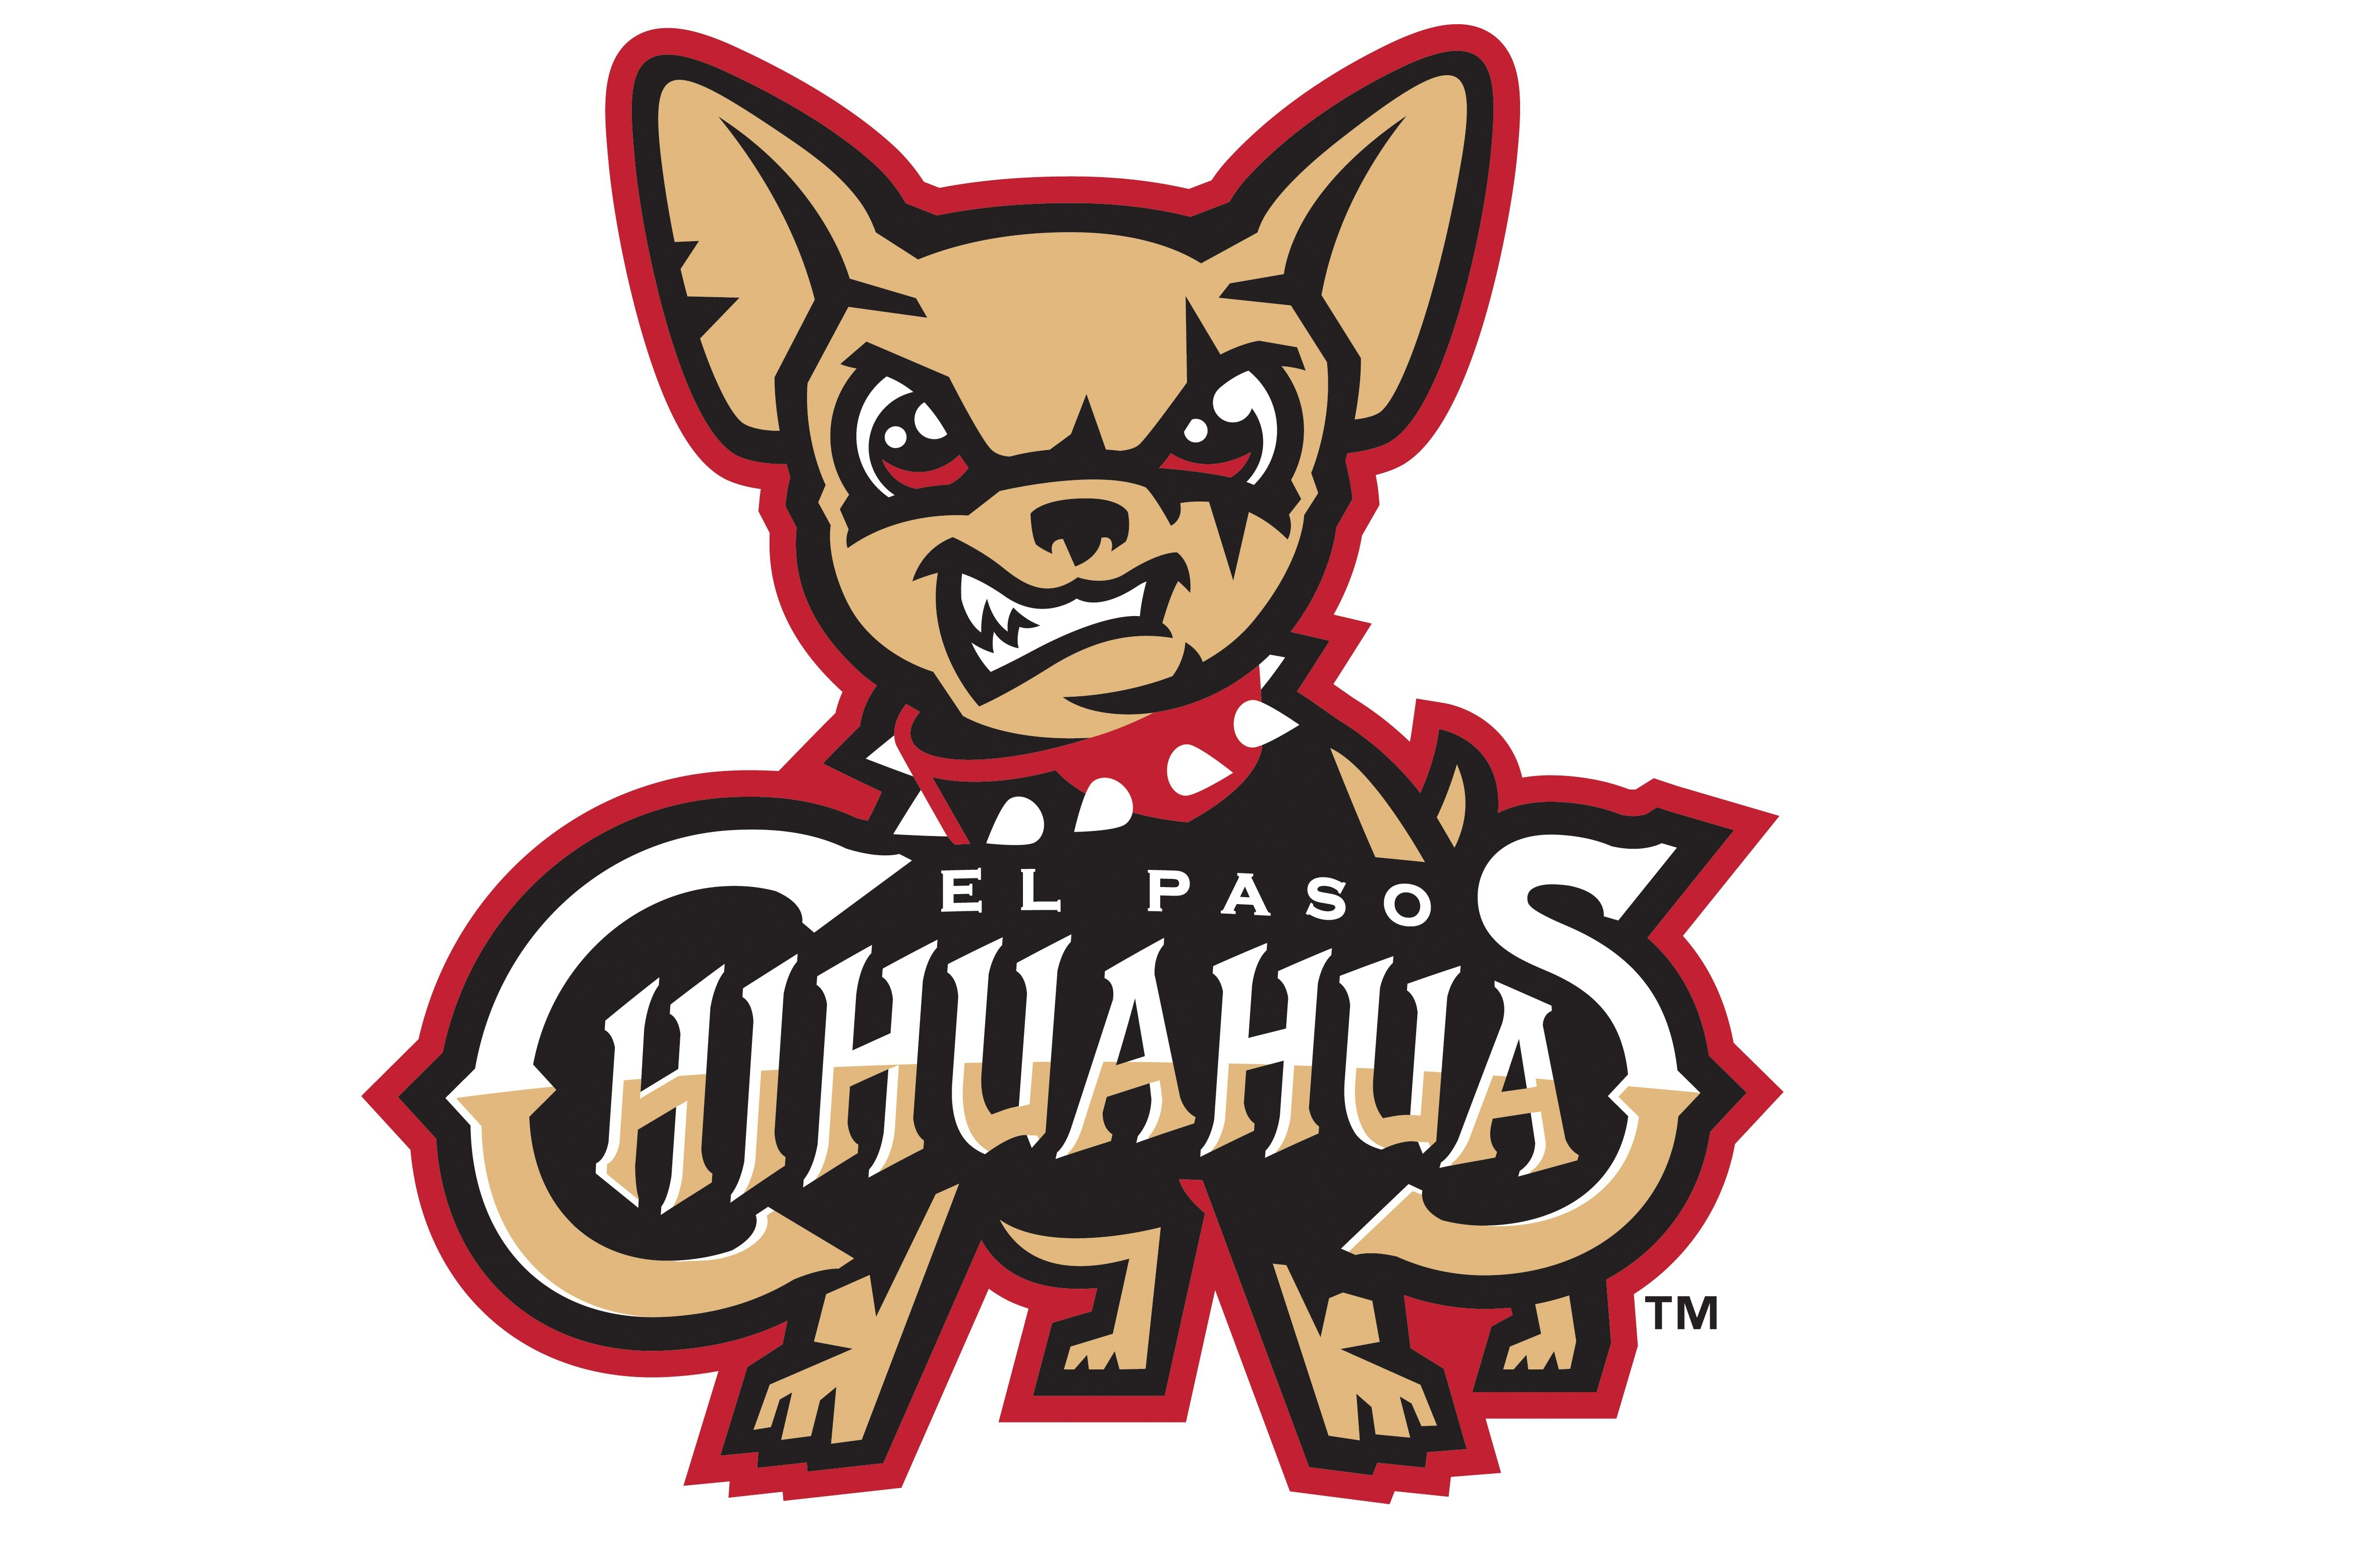 El Paso Chihuahuas Hd Wallpaper